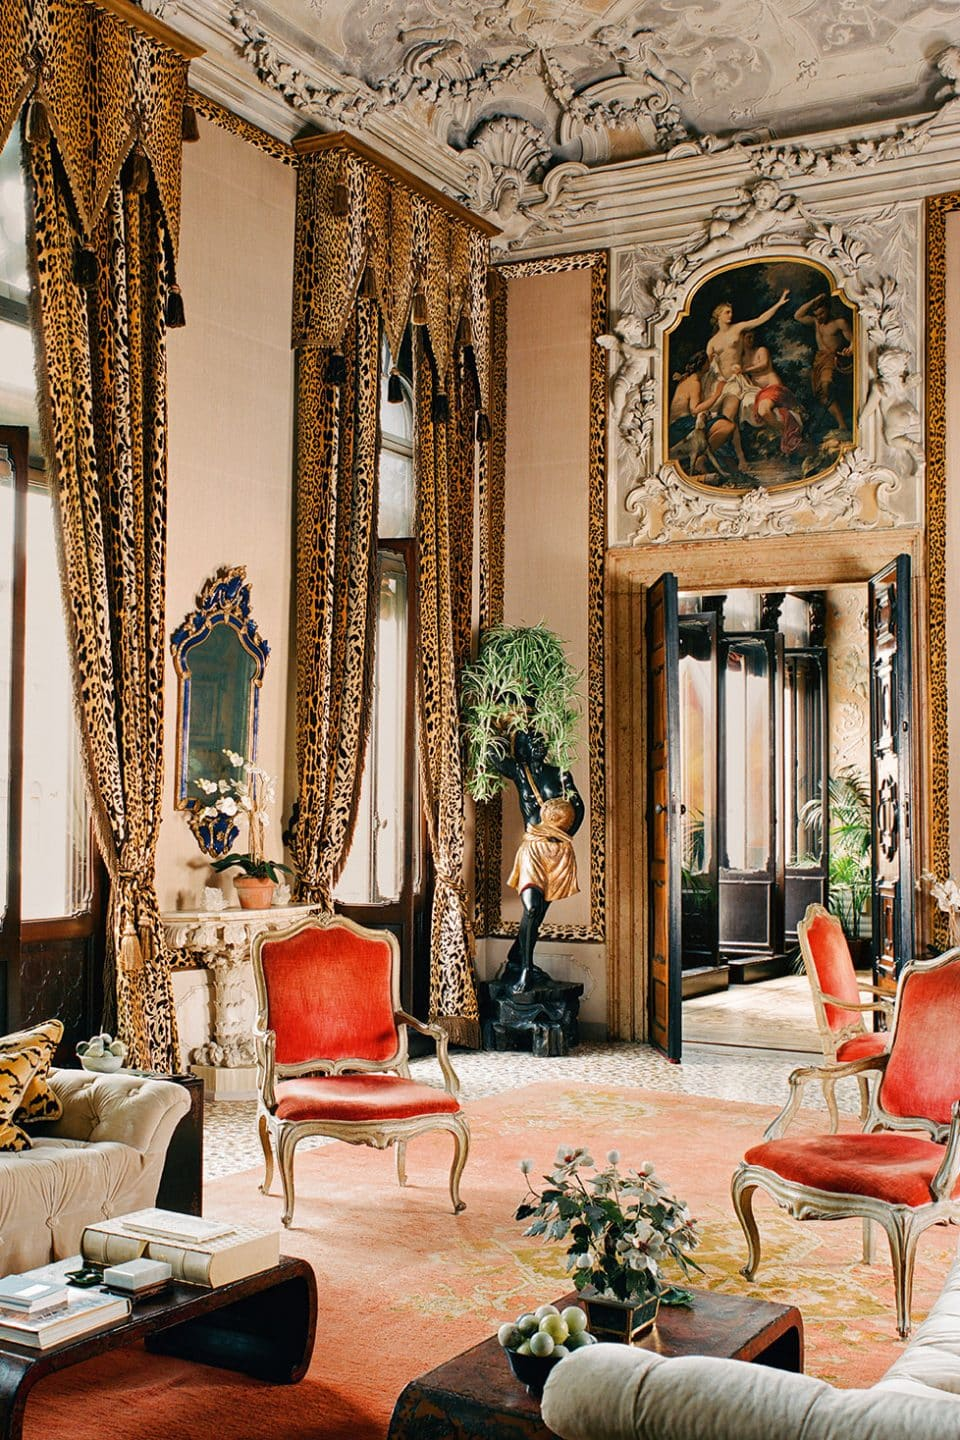 These Are the Most Talked-About Interiors from the Past Century